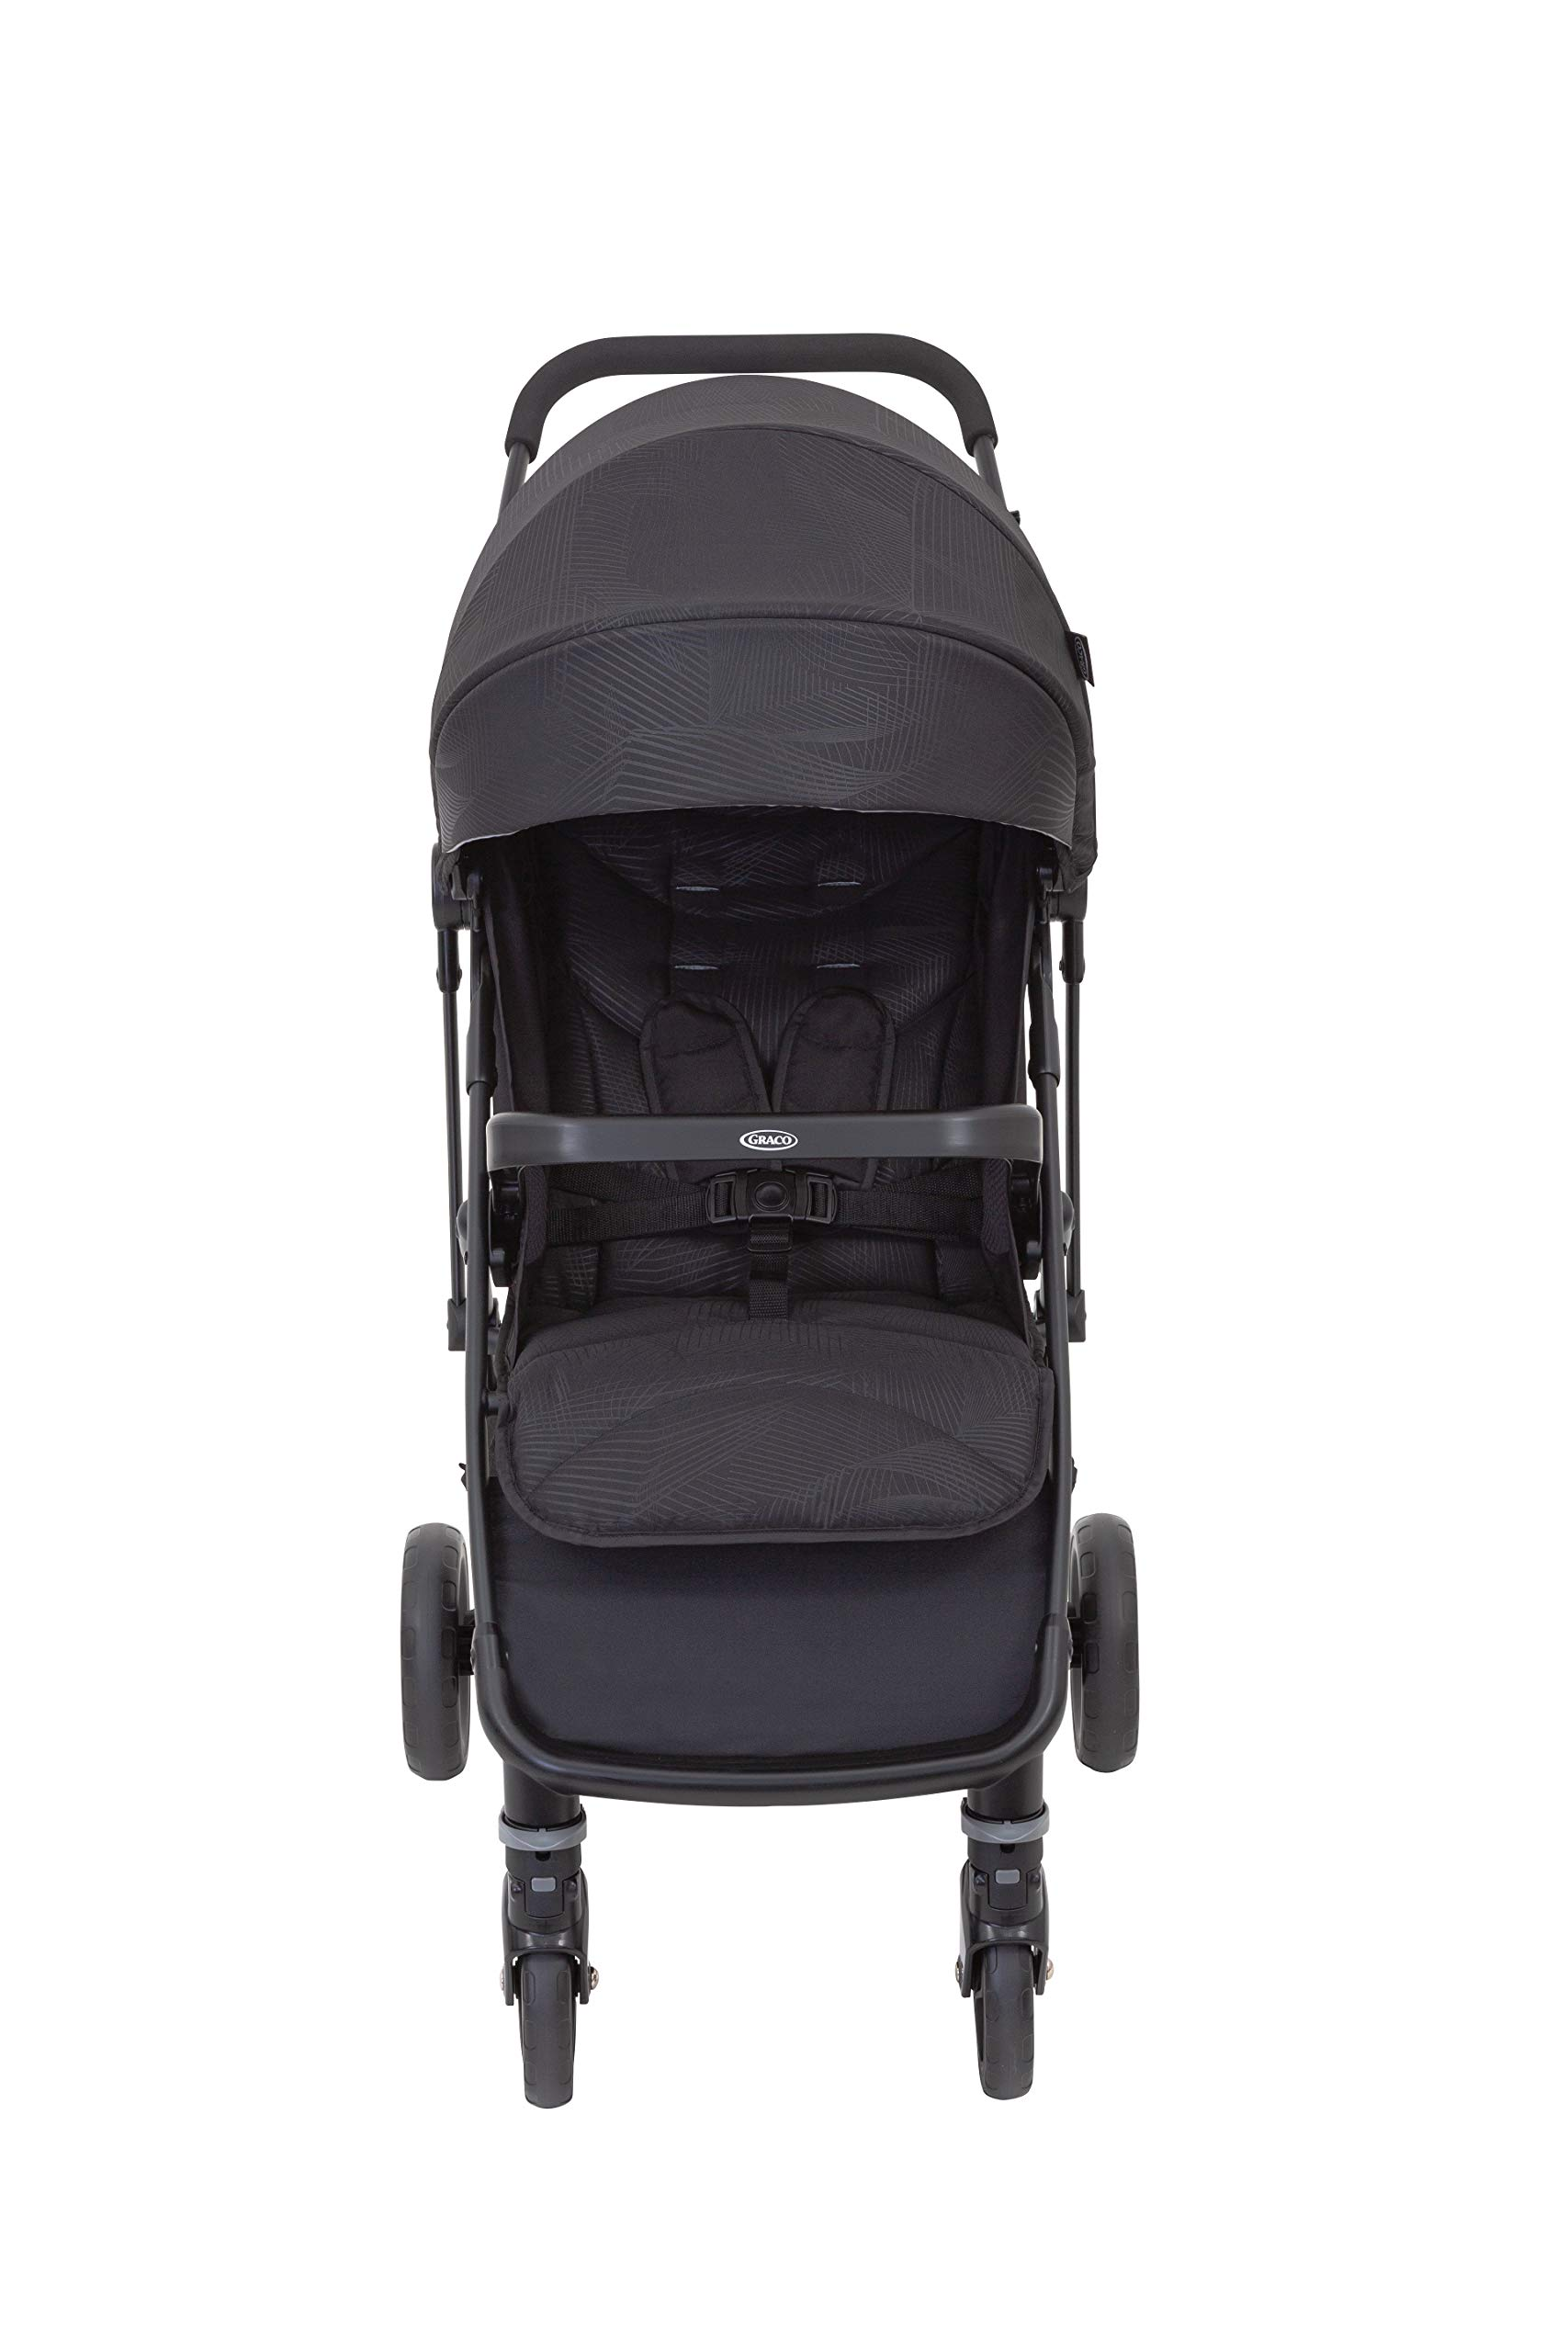 Graco Breaze Lite Stroller, Black Graco From birth to 3 years approx. (0-15kg) Lightweight at only 6.5kg Click connect travel system compatible with graco snugride/snugessentials isize infant car seats 1